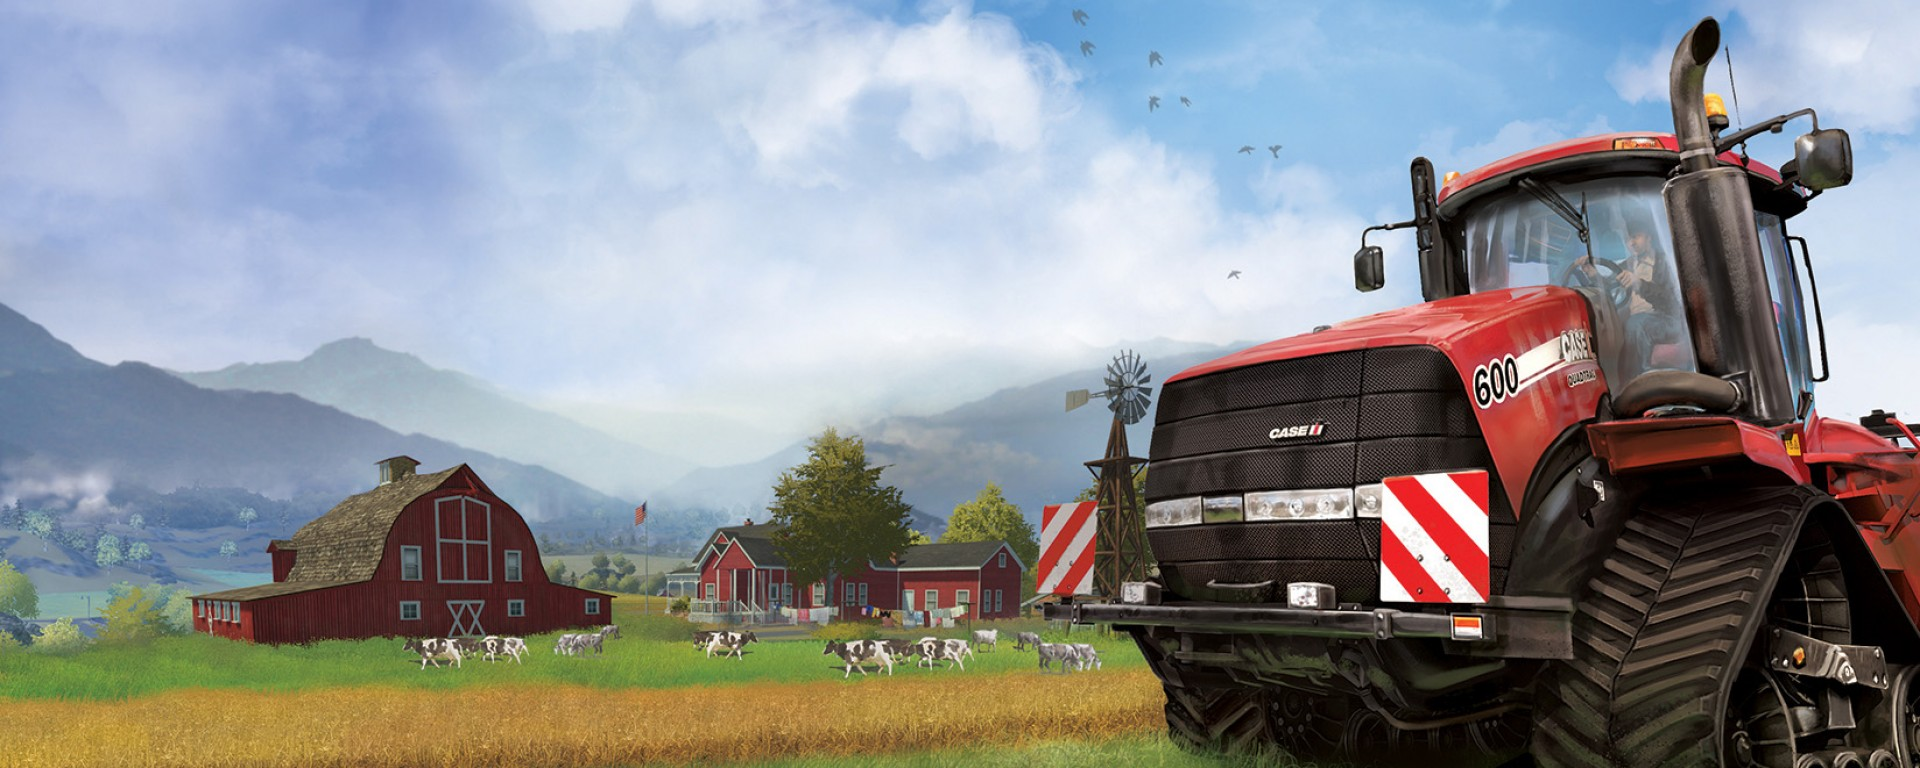 farming_simulator-artwork1